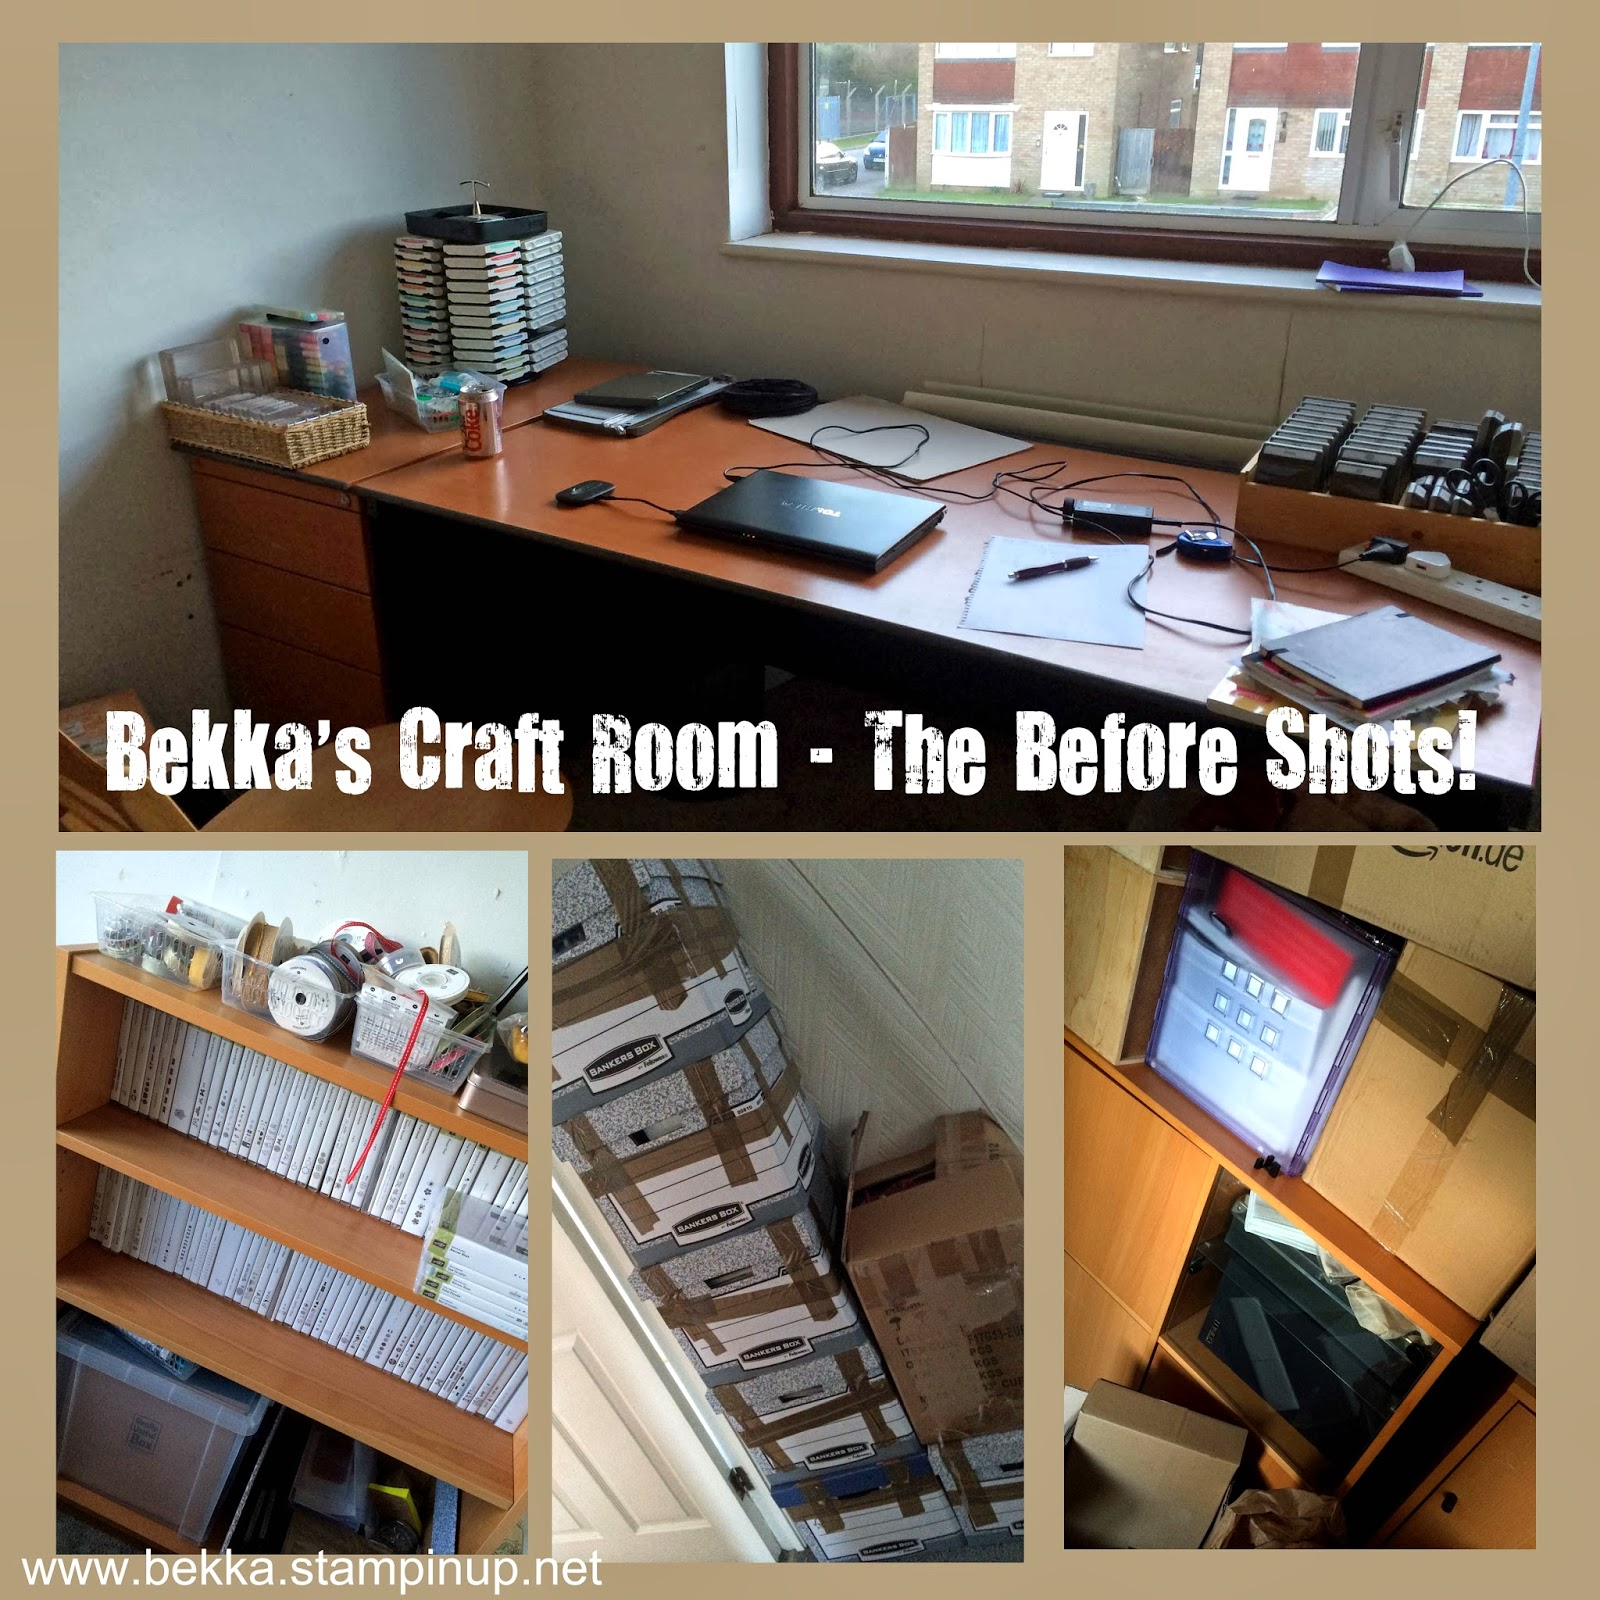 Bekka's Craft Room the Before Shots!